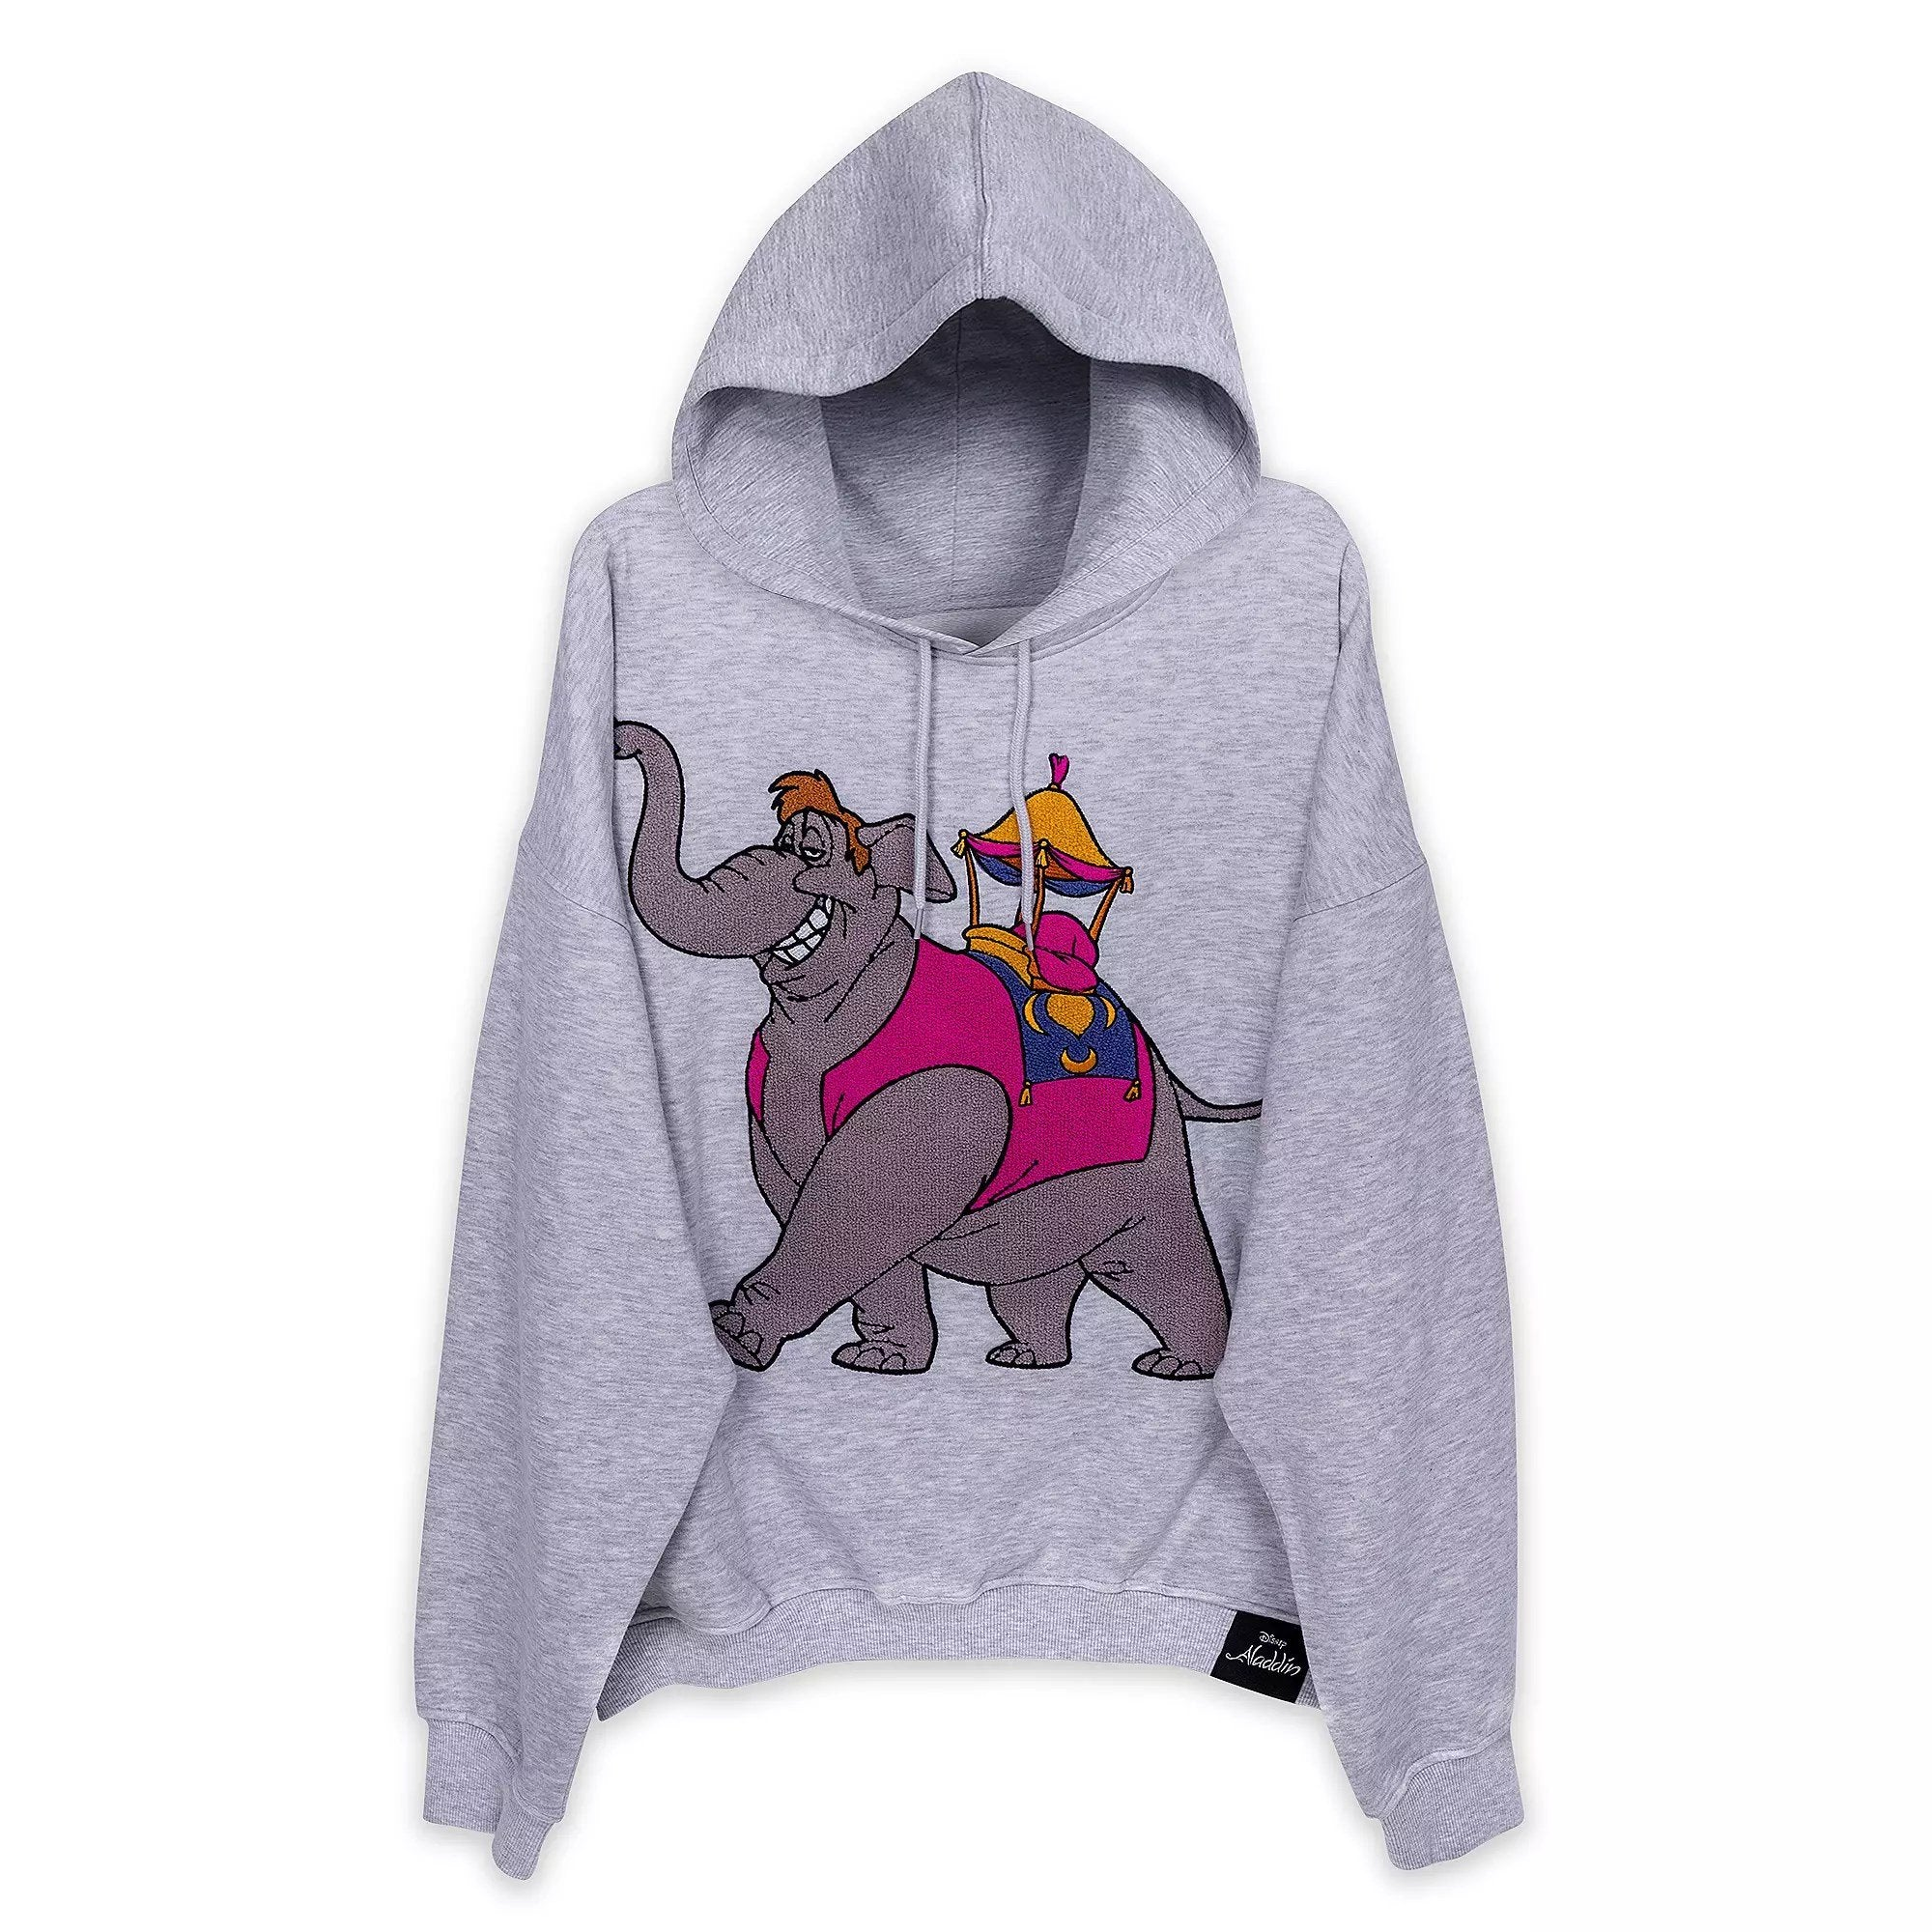 Abu as Elephant Pullover Hoodie for Adults – Aladdin – Oh My Disney